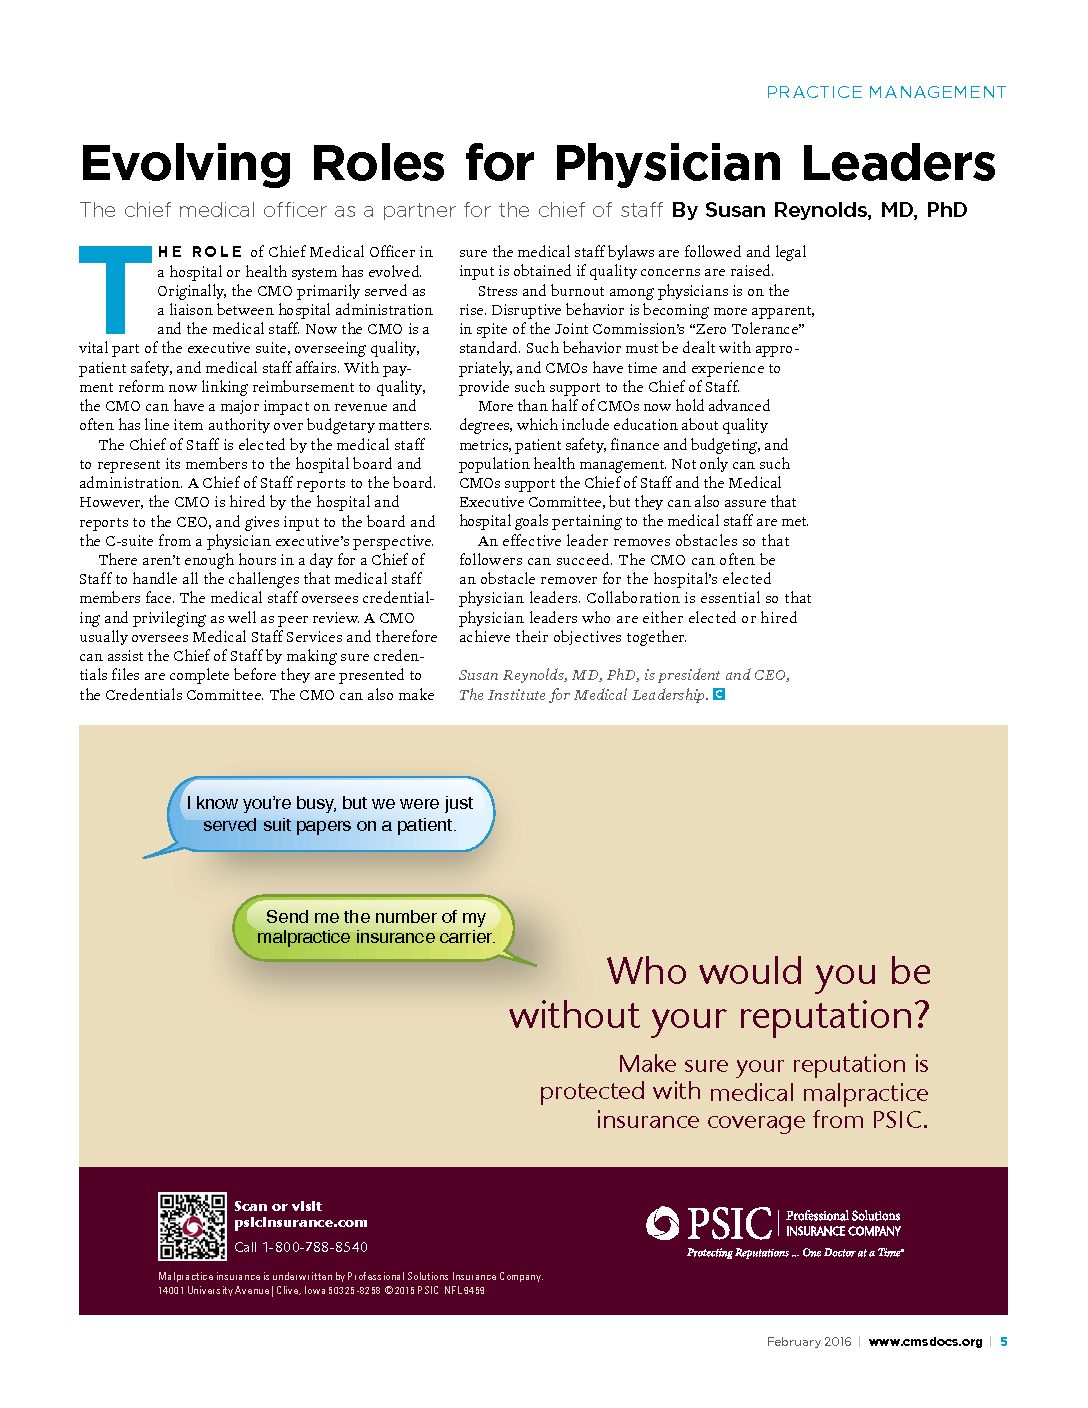 Evolving Roles for Physician Leaders